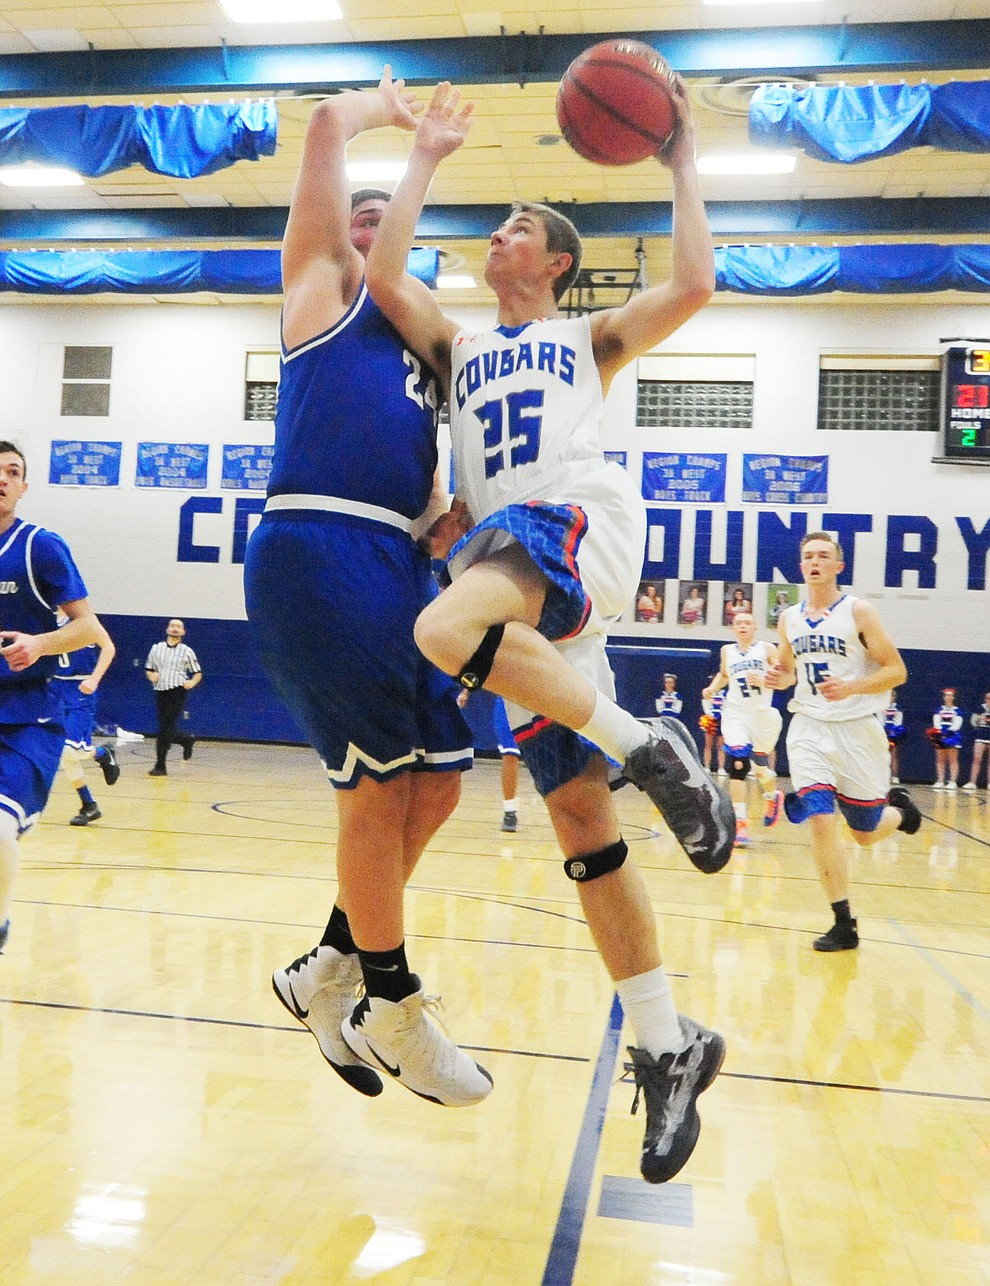 Chino Valley's Blake ELy goes up hard as the Cougars take on the Kingman Bulldogs Tuesday, January 10 in Chino Vallley. (Les Stukenberg/The Daily Courier)